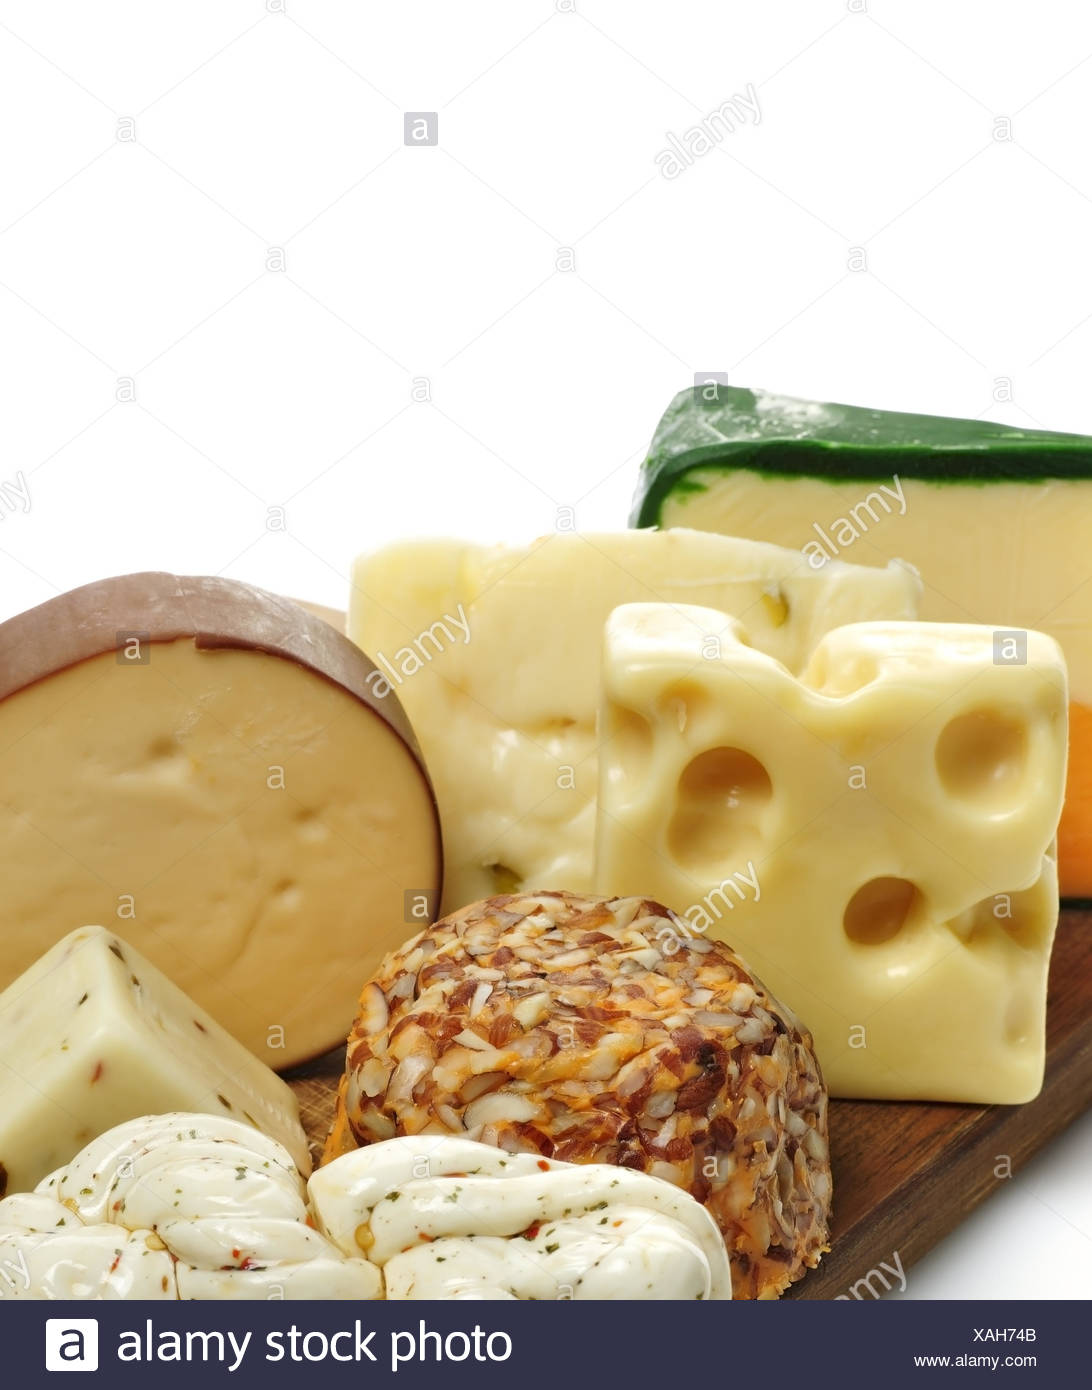 Cheese Slices - Stock Image